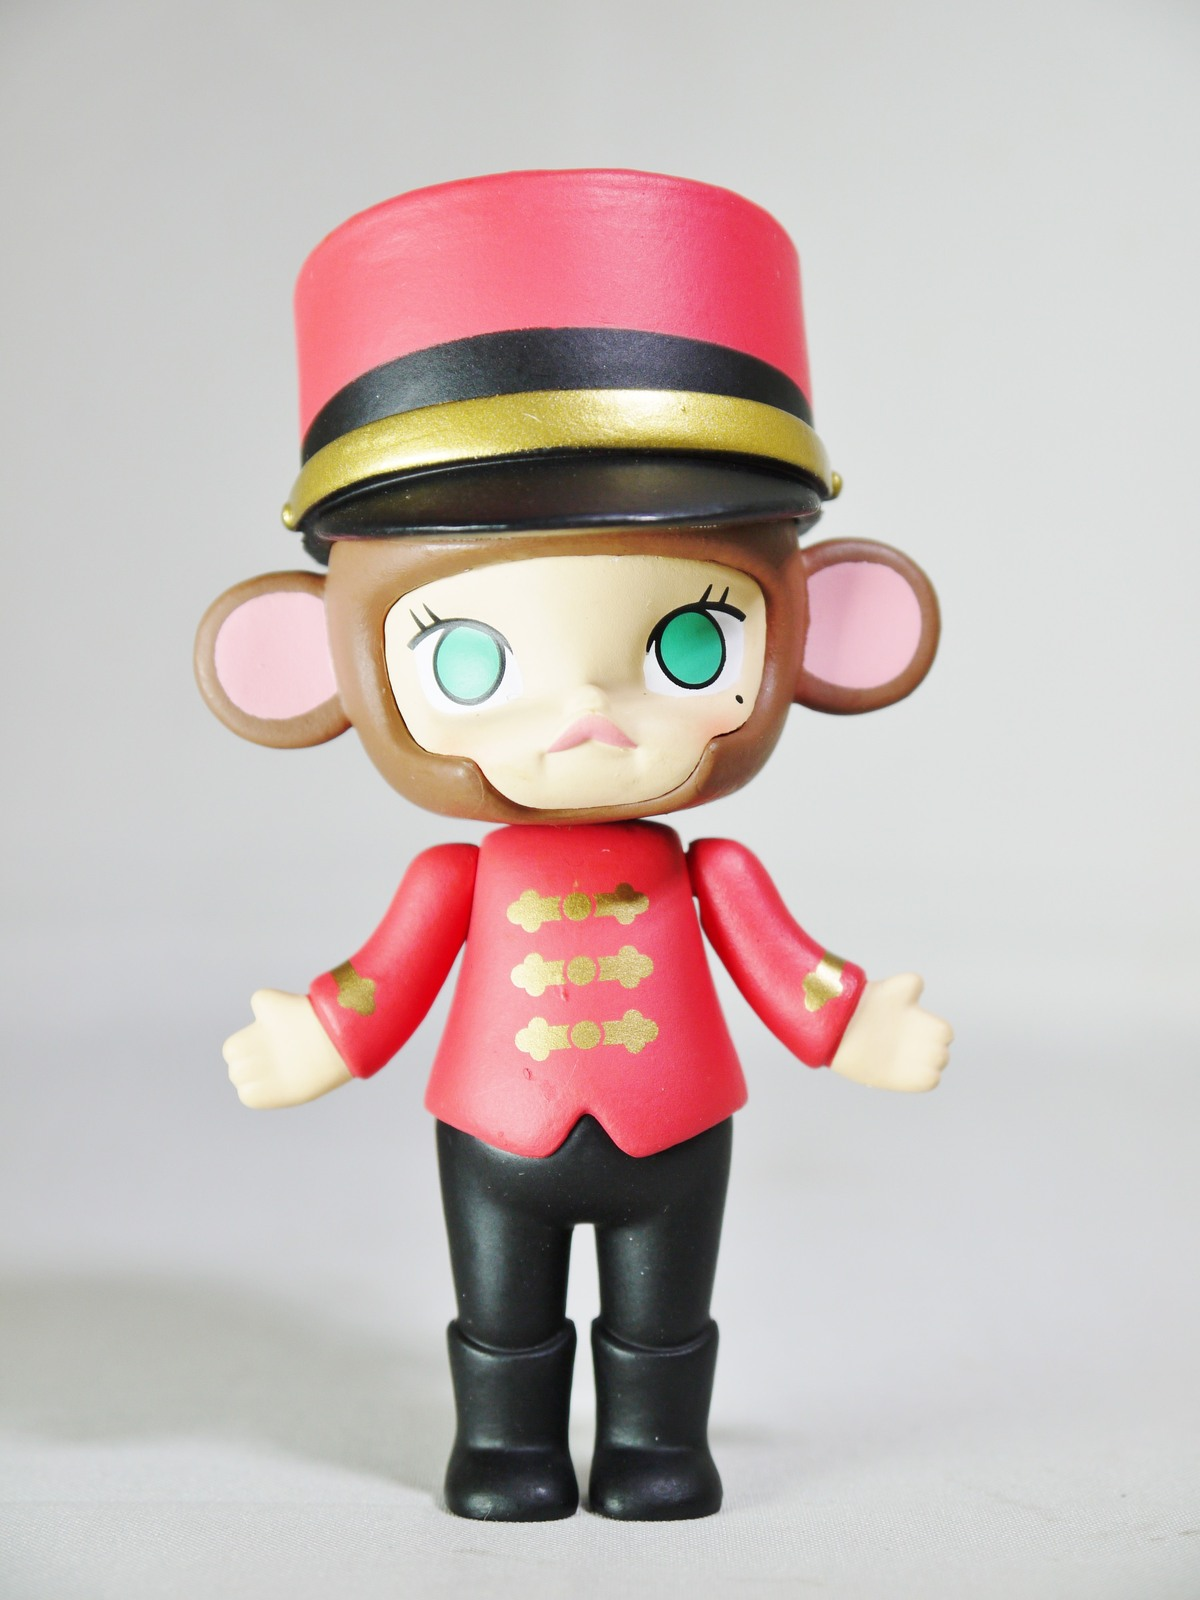 POP MART Kennyswork BLOCK Little Molly Chinese Zodiac Monkey Porter Mini Figure